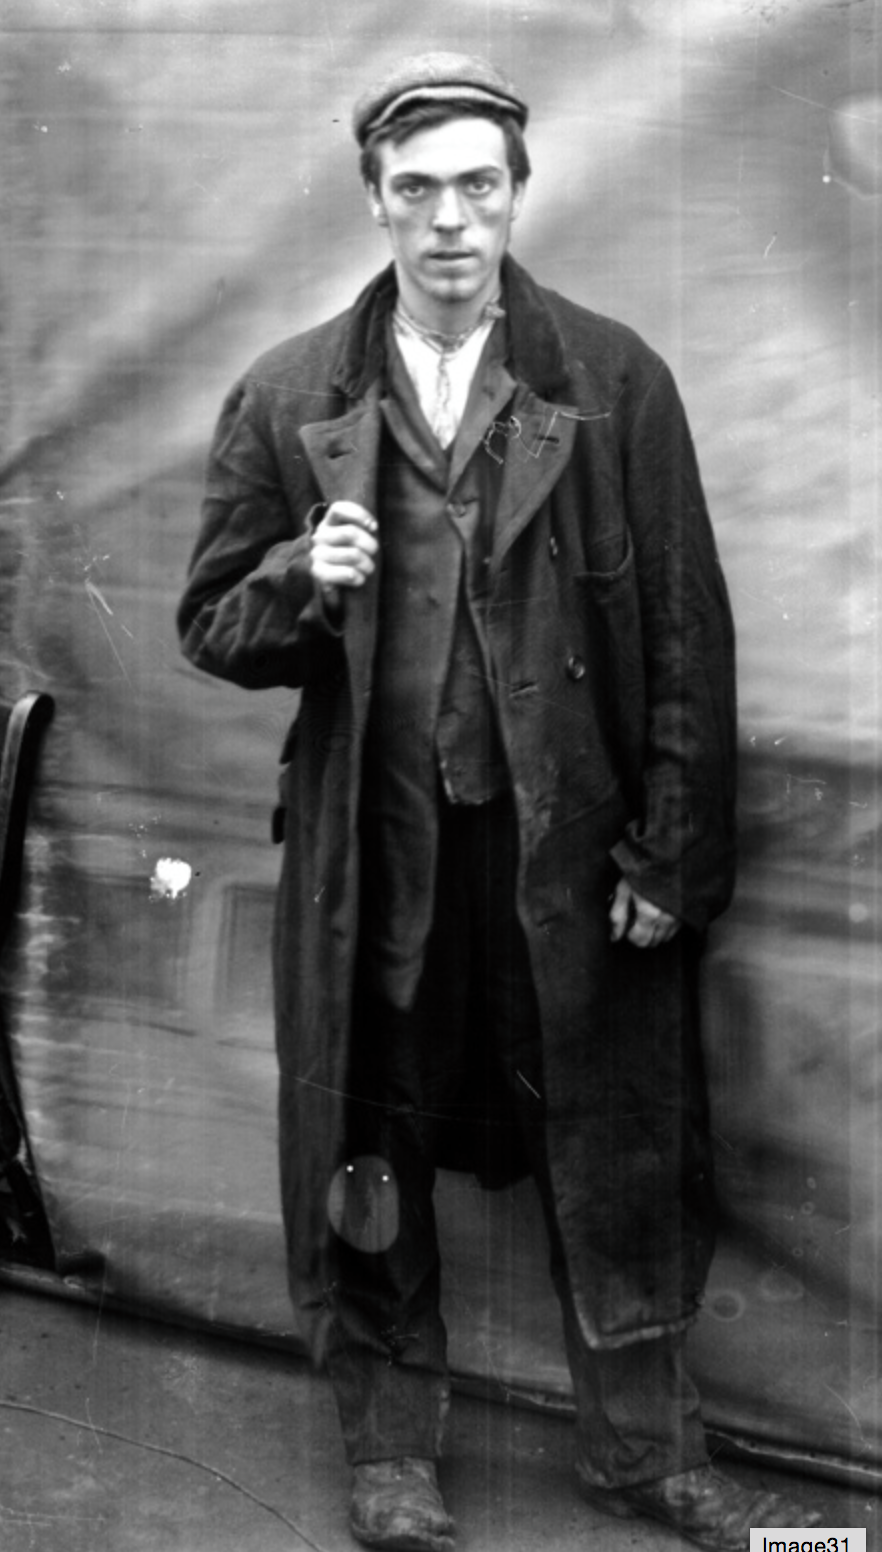 Pin By Marucho On Our Town Whitechapel Victorian Men Poor Clothes